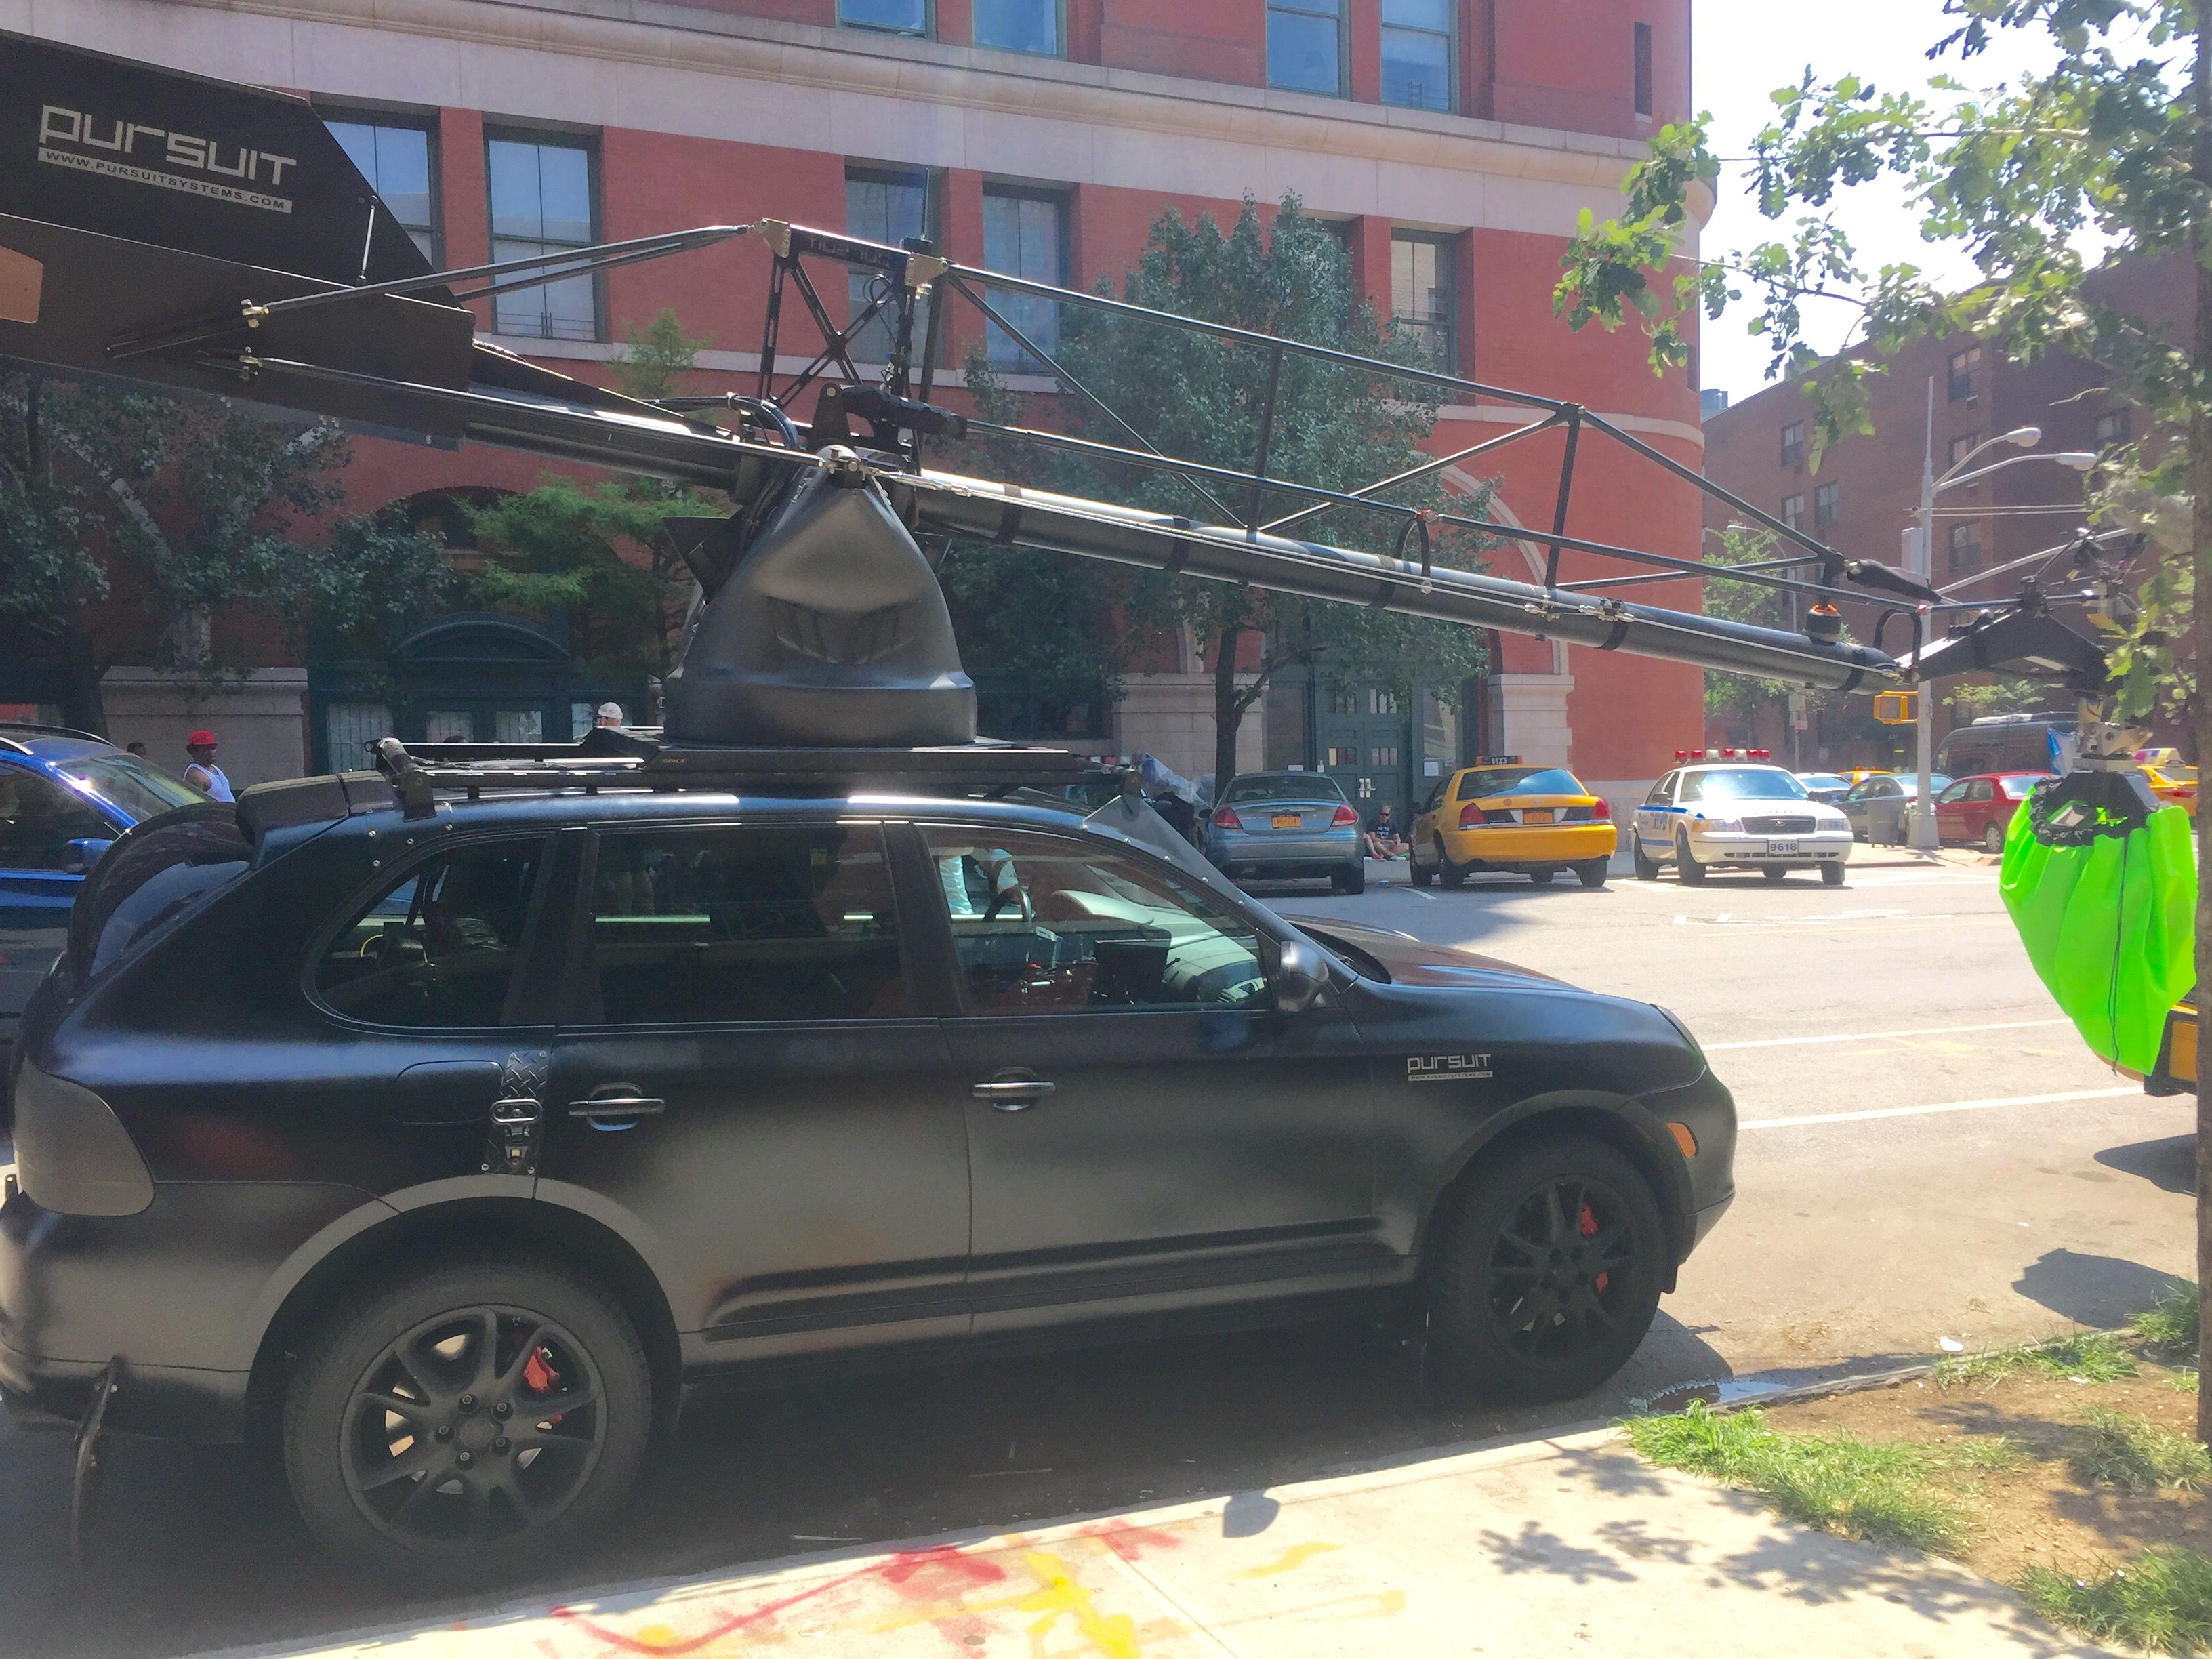 Porsche Cayenne used as a film car with a boom camera in SoHo NYC